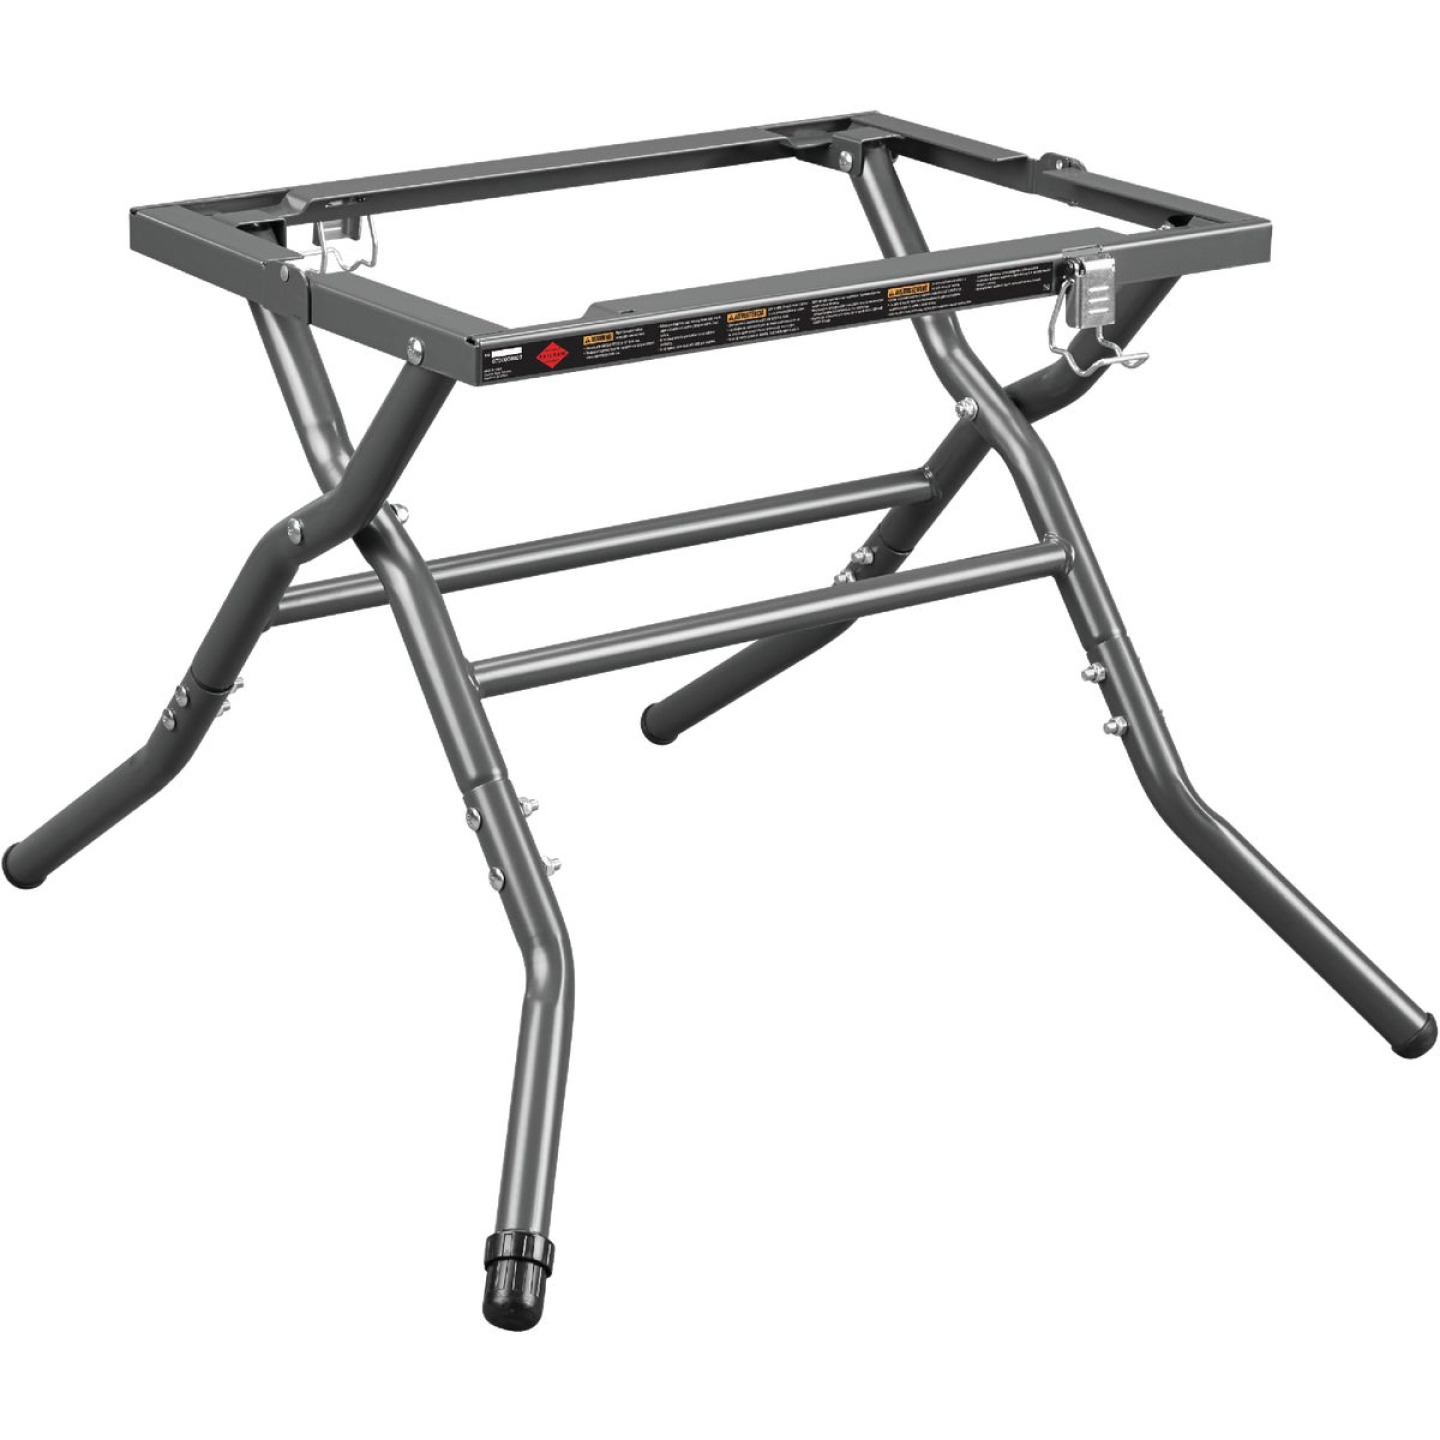 SKILSAW 8-1/4 In. Portable Worm Drive Table Saw Stand Image 1